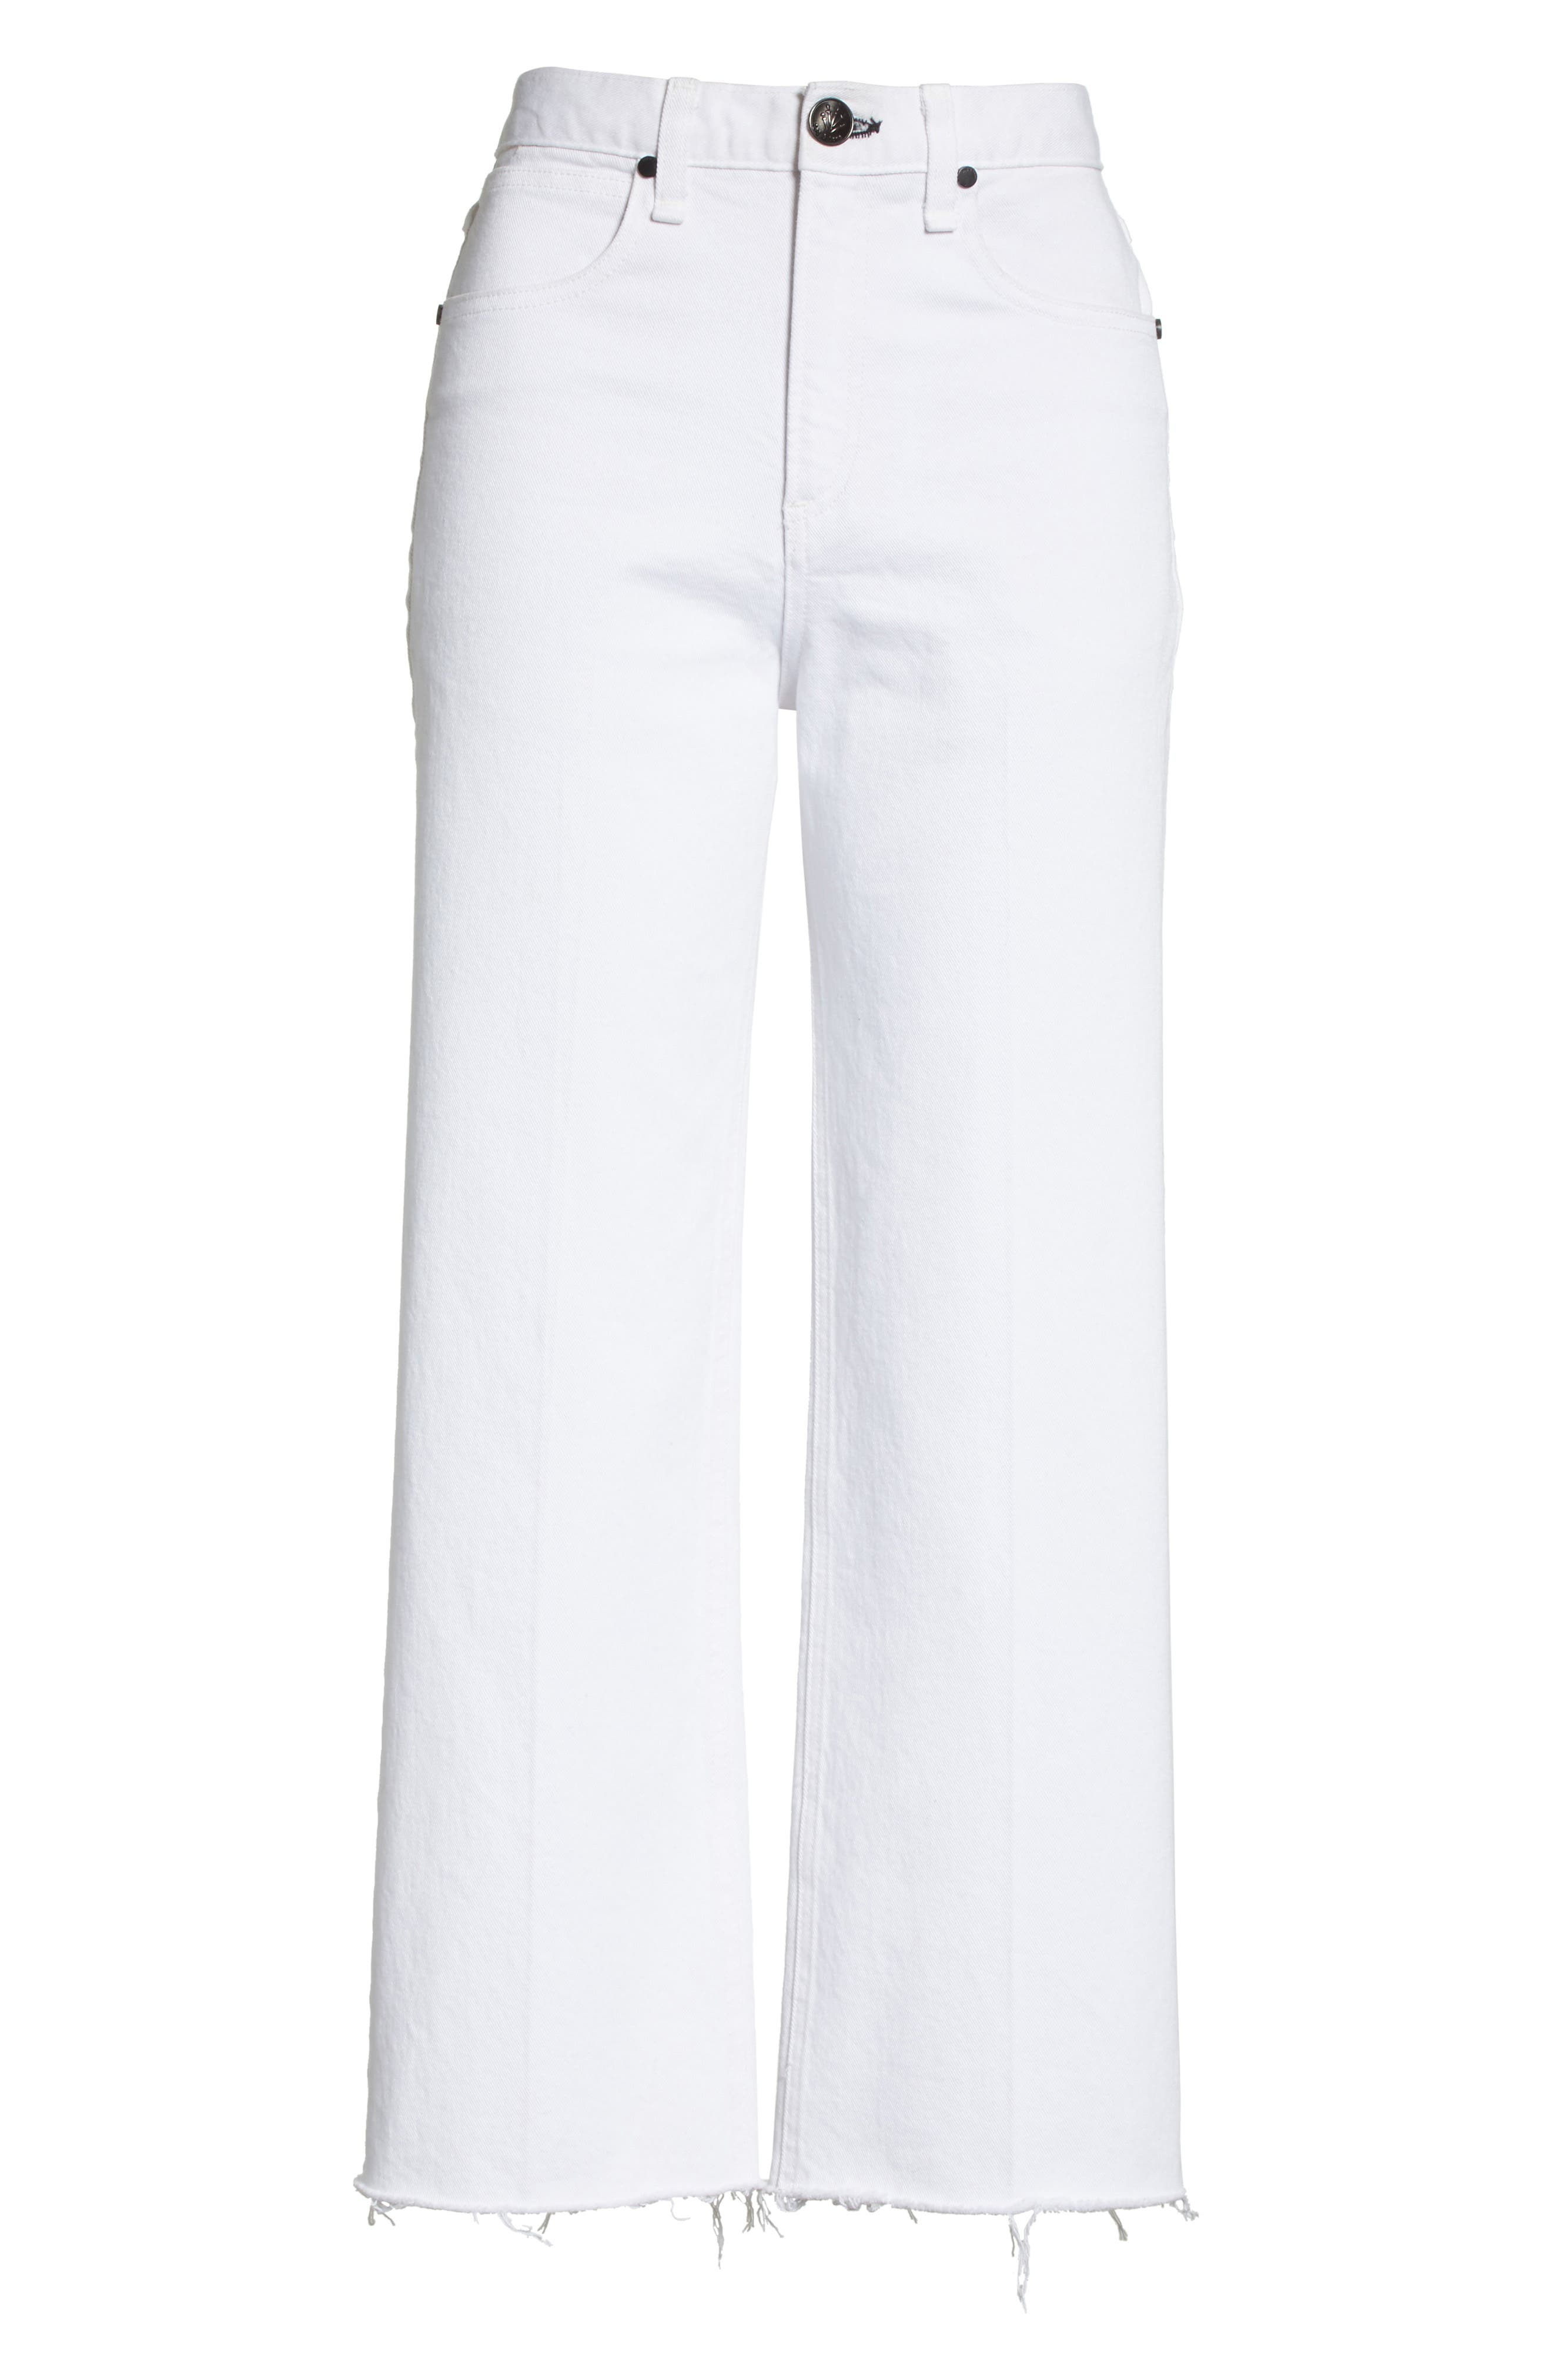 Justine High Waist Ankle Wide Leg Trouser Jeans,                             Alternate thumbnail 6, color,                             White